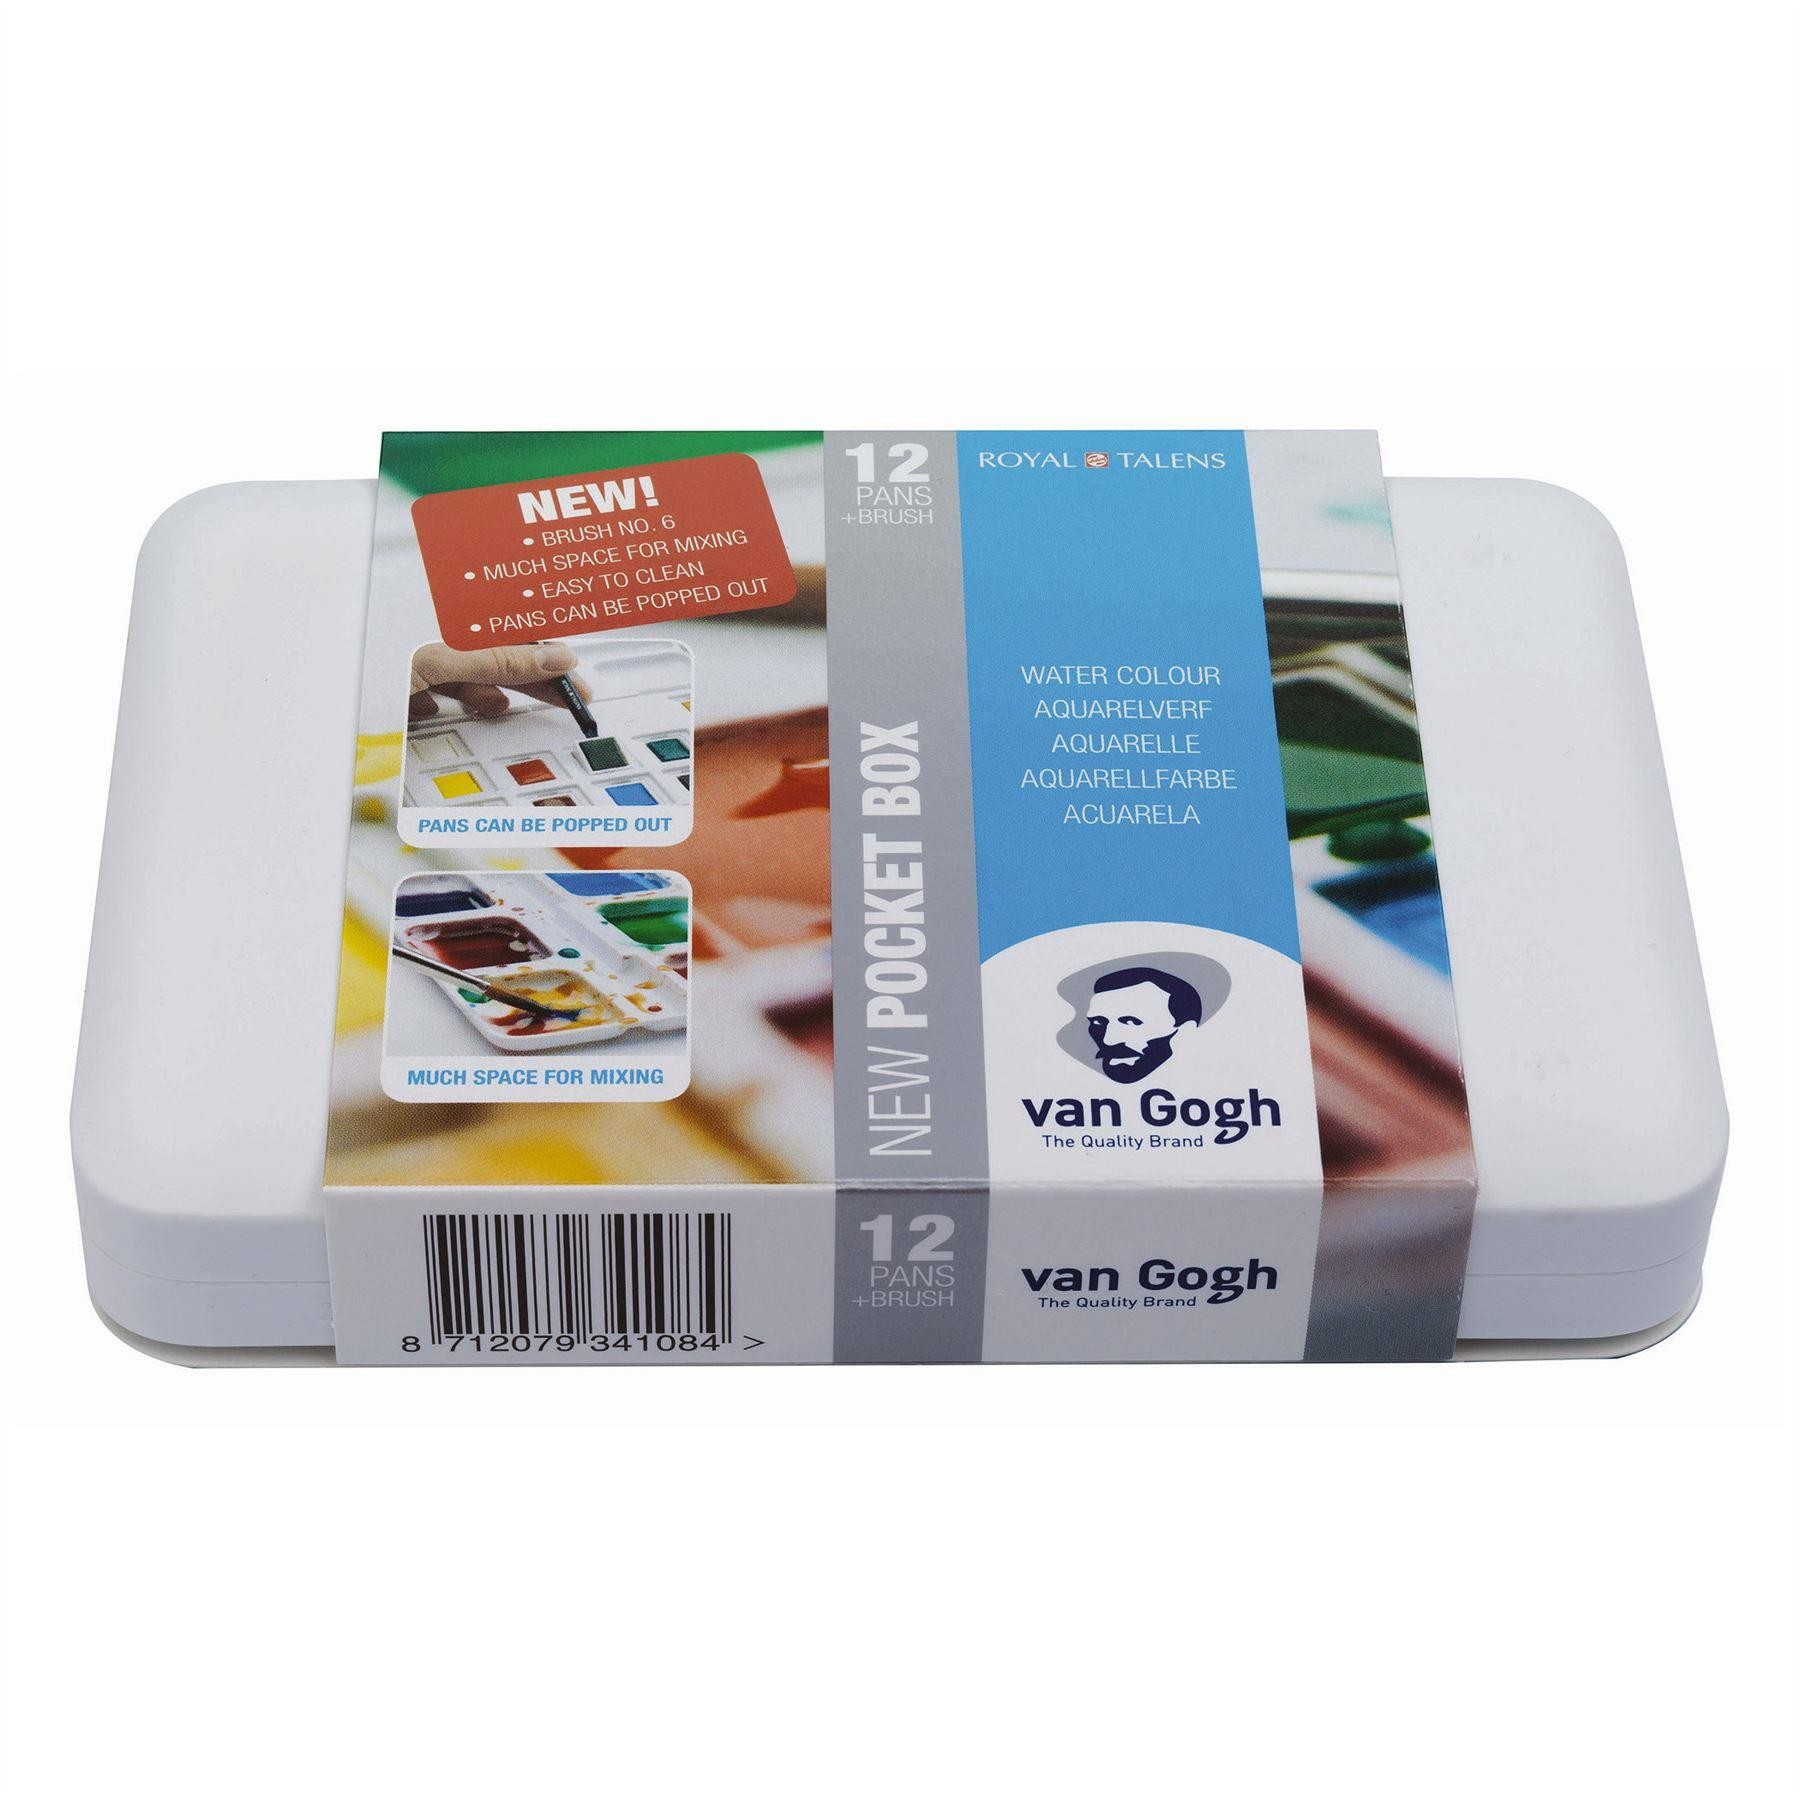 Van Gogh Water colour Set 12 half pans travel set